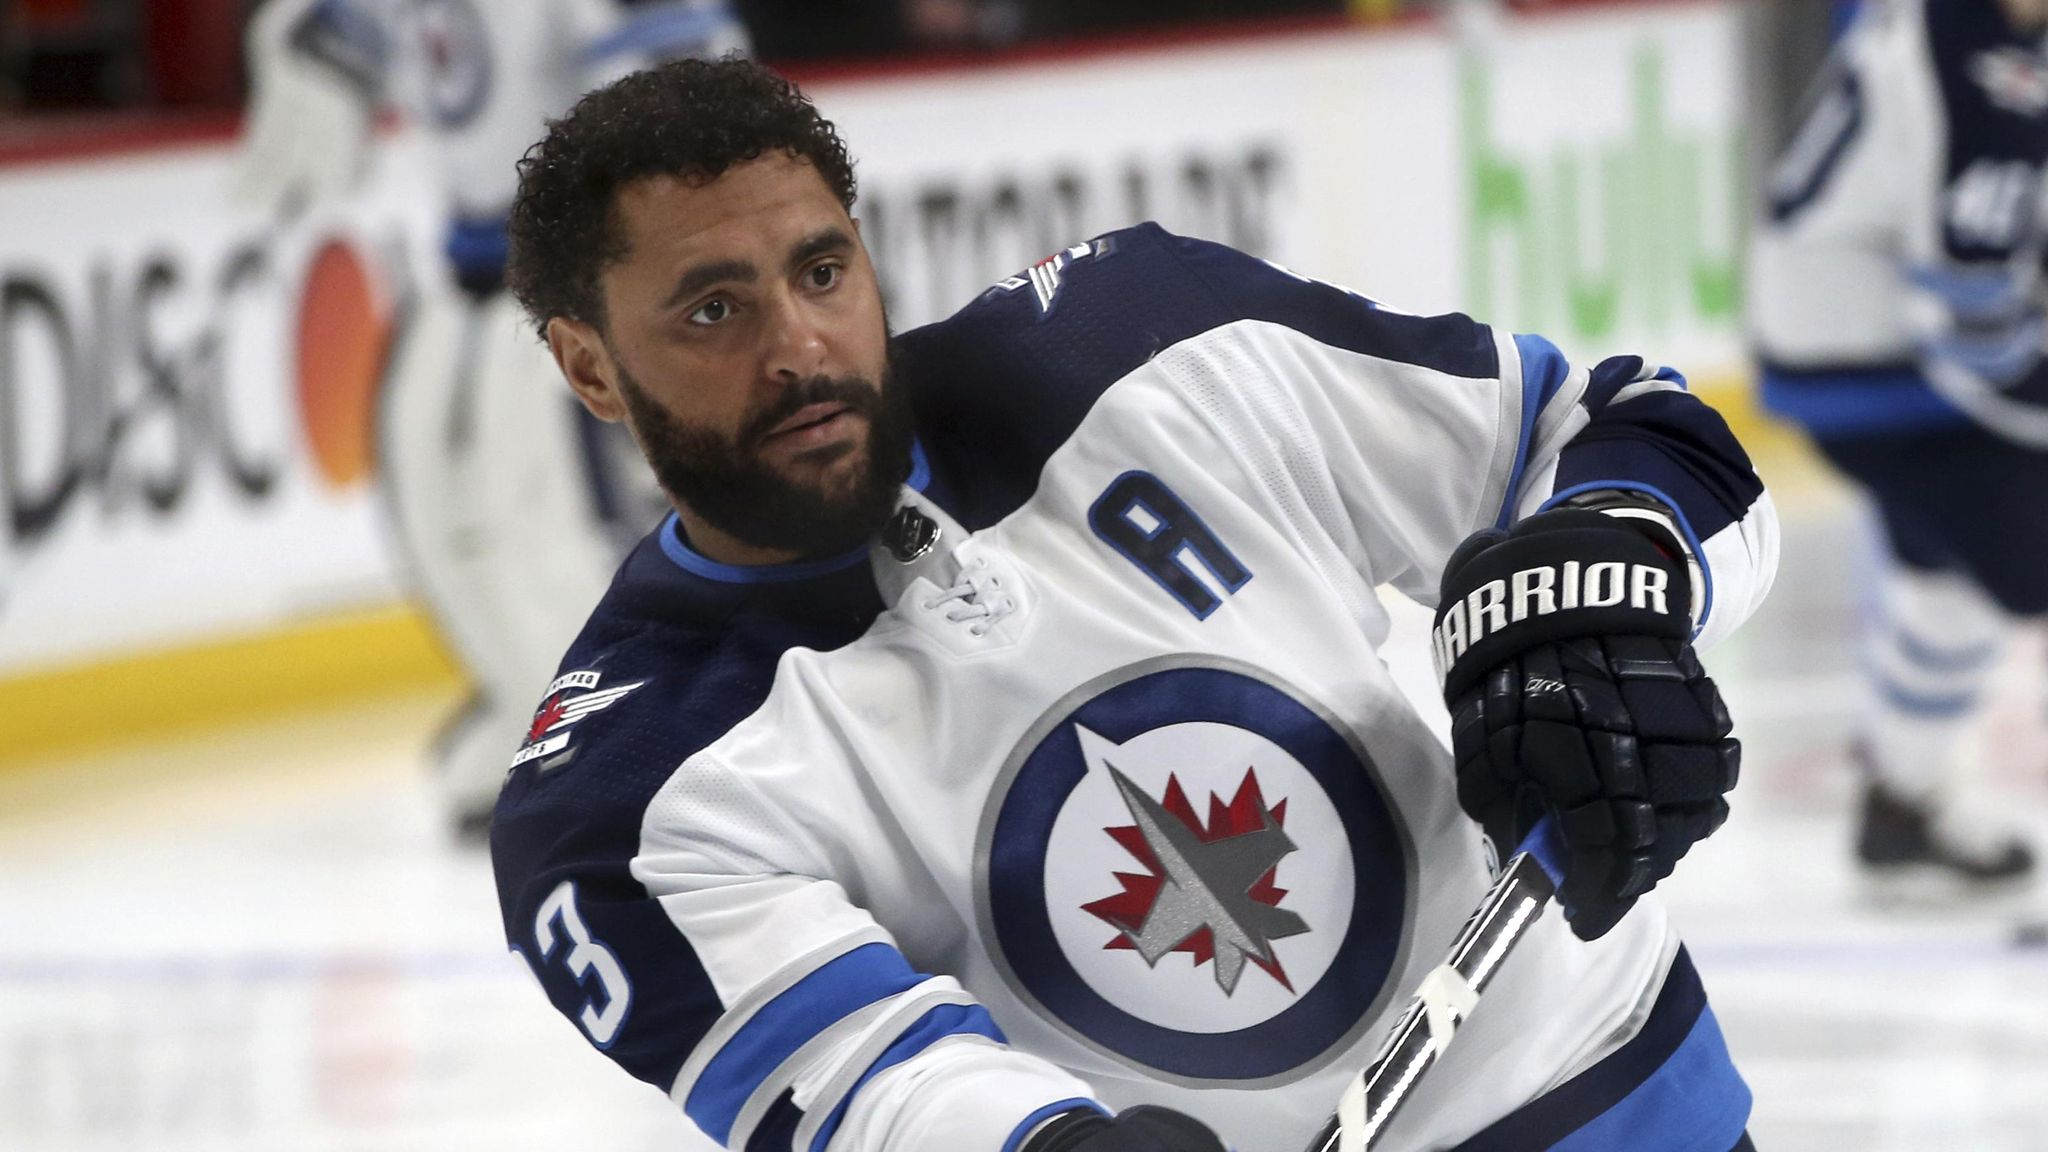 Jets_big_buff_hockey_70952_s2048x1152